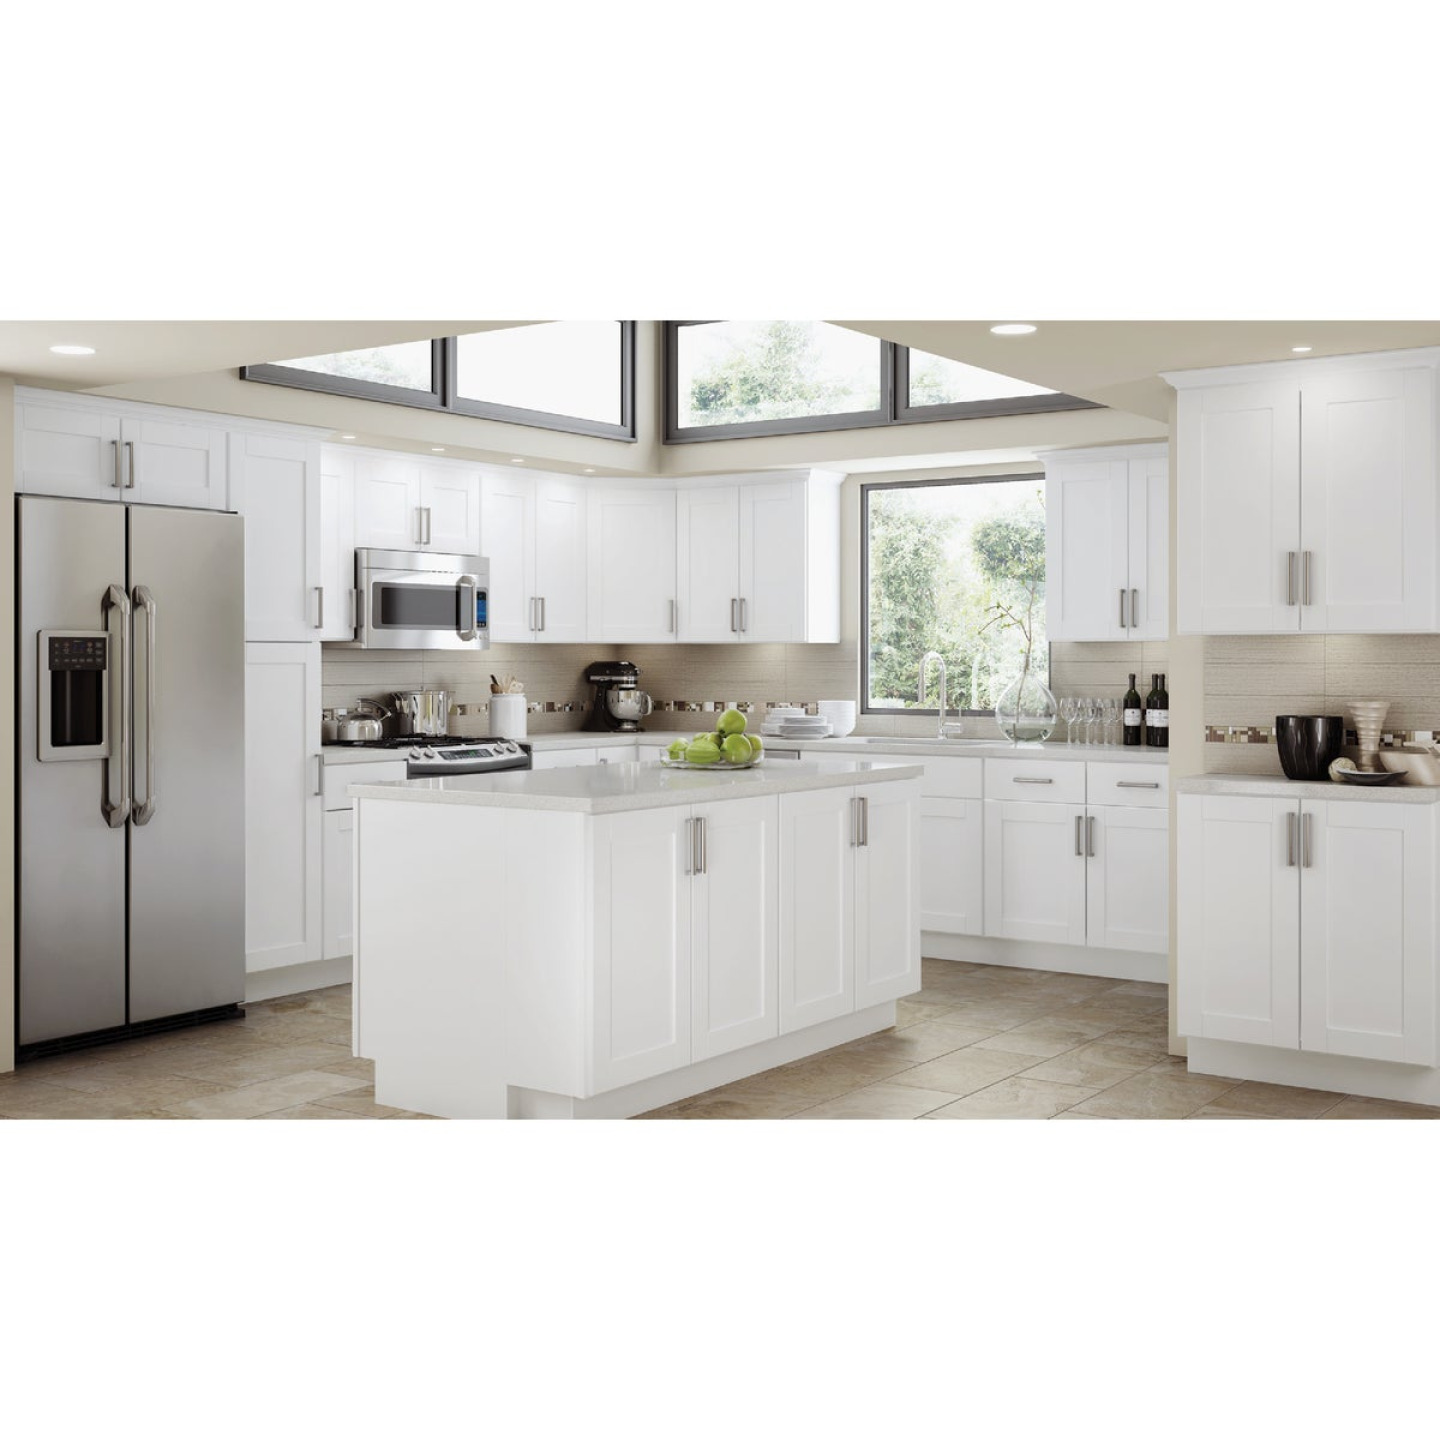 Continental Cabinets Andover Shaker 36 In. W x 30 In. H x 12 In. D White Thermofoil Wall Kitchen Cabinet Image 2